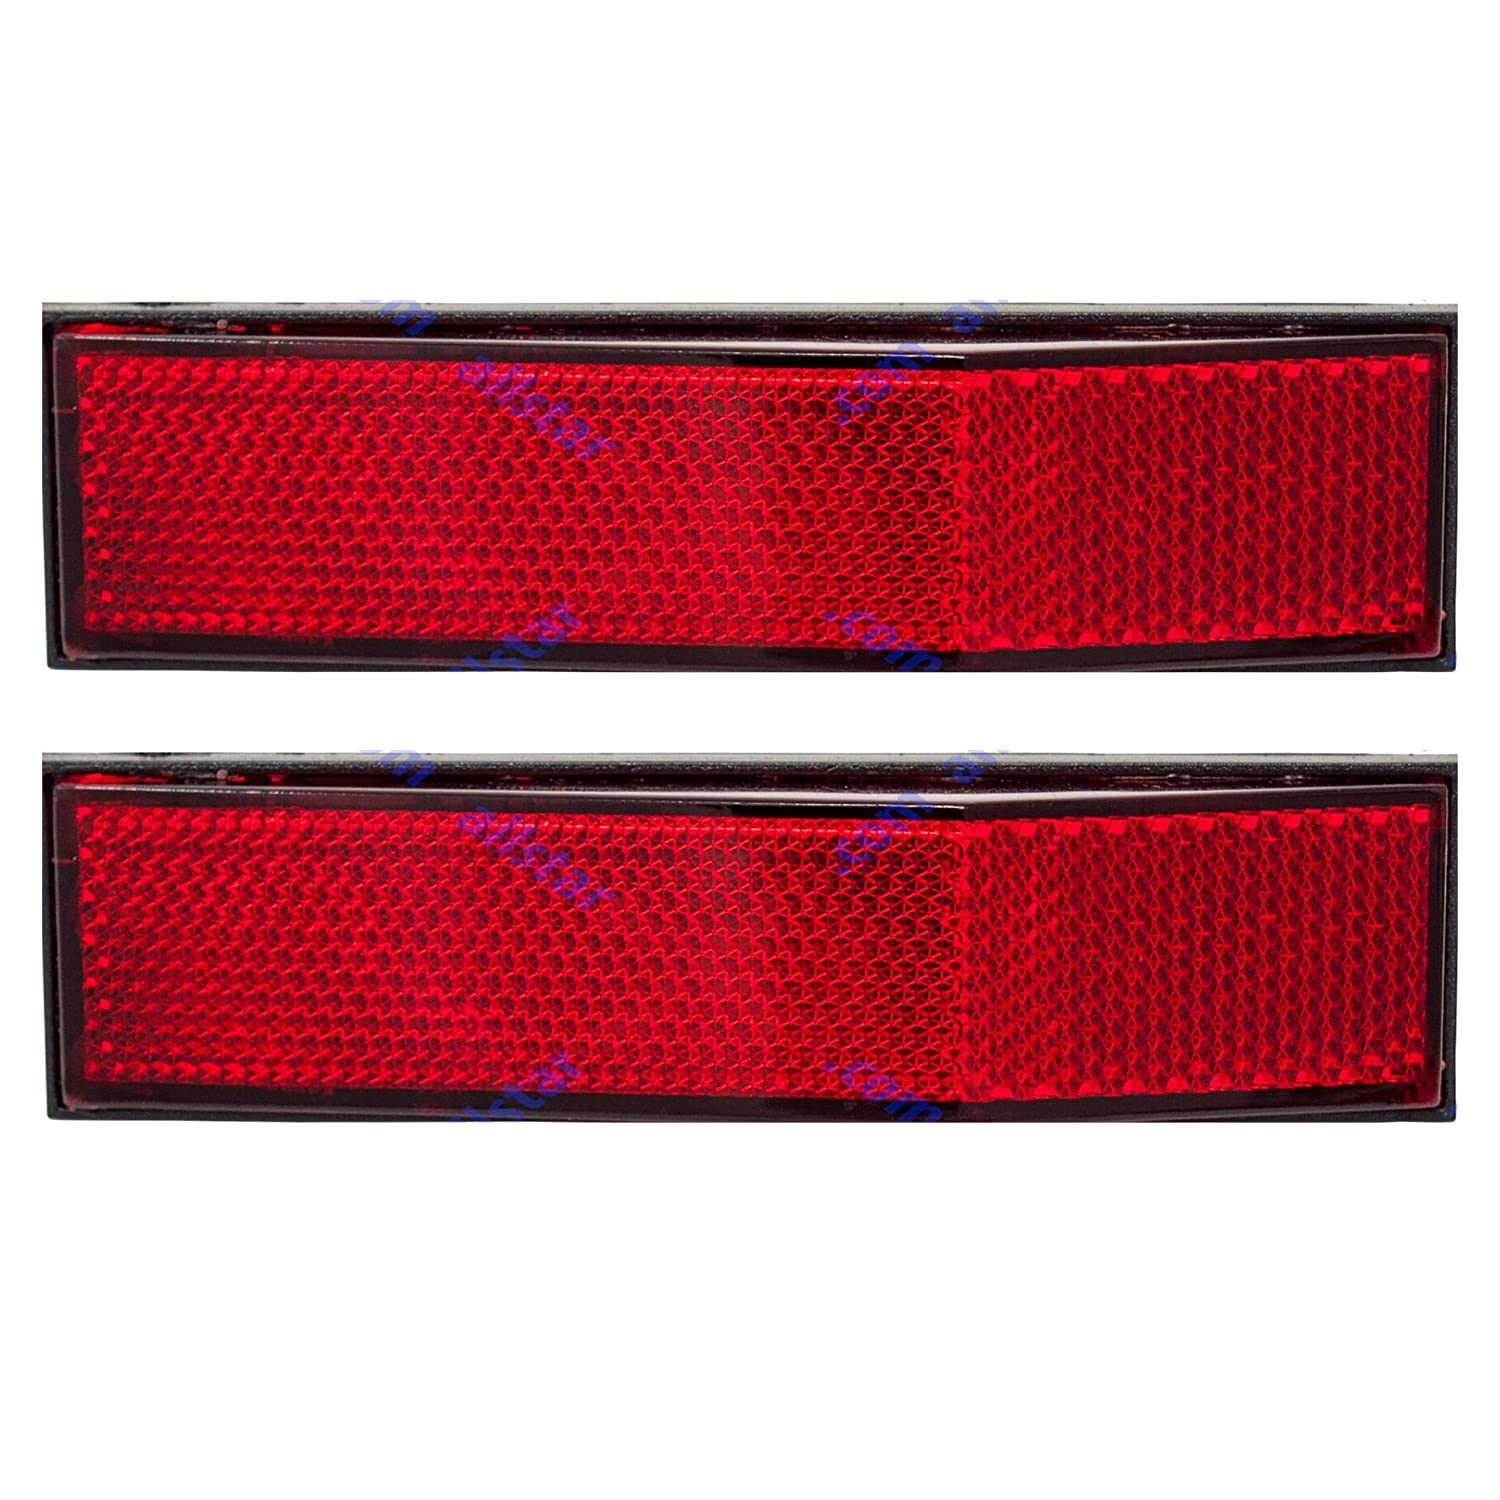 Automobiles ALL STAR TRUCK PARTS Trucks RVs Red, 2 5-1//4 Angled Rectangular Stick On Reflector- 2 Pack for Trailers Industrial Strong Adhesive DOT//SAE Approved Mail Boxes SUVs Boats